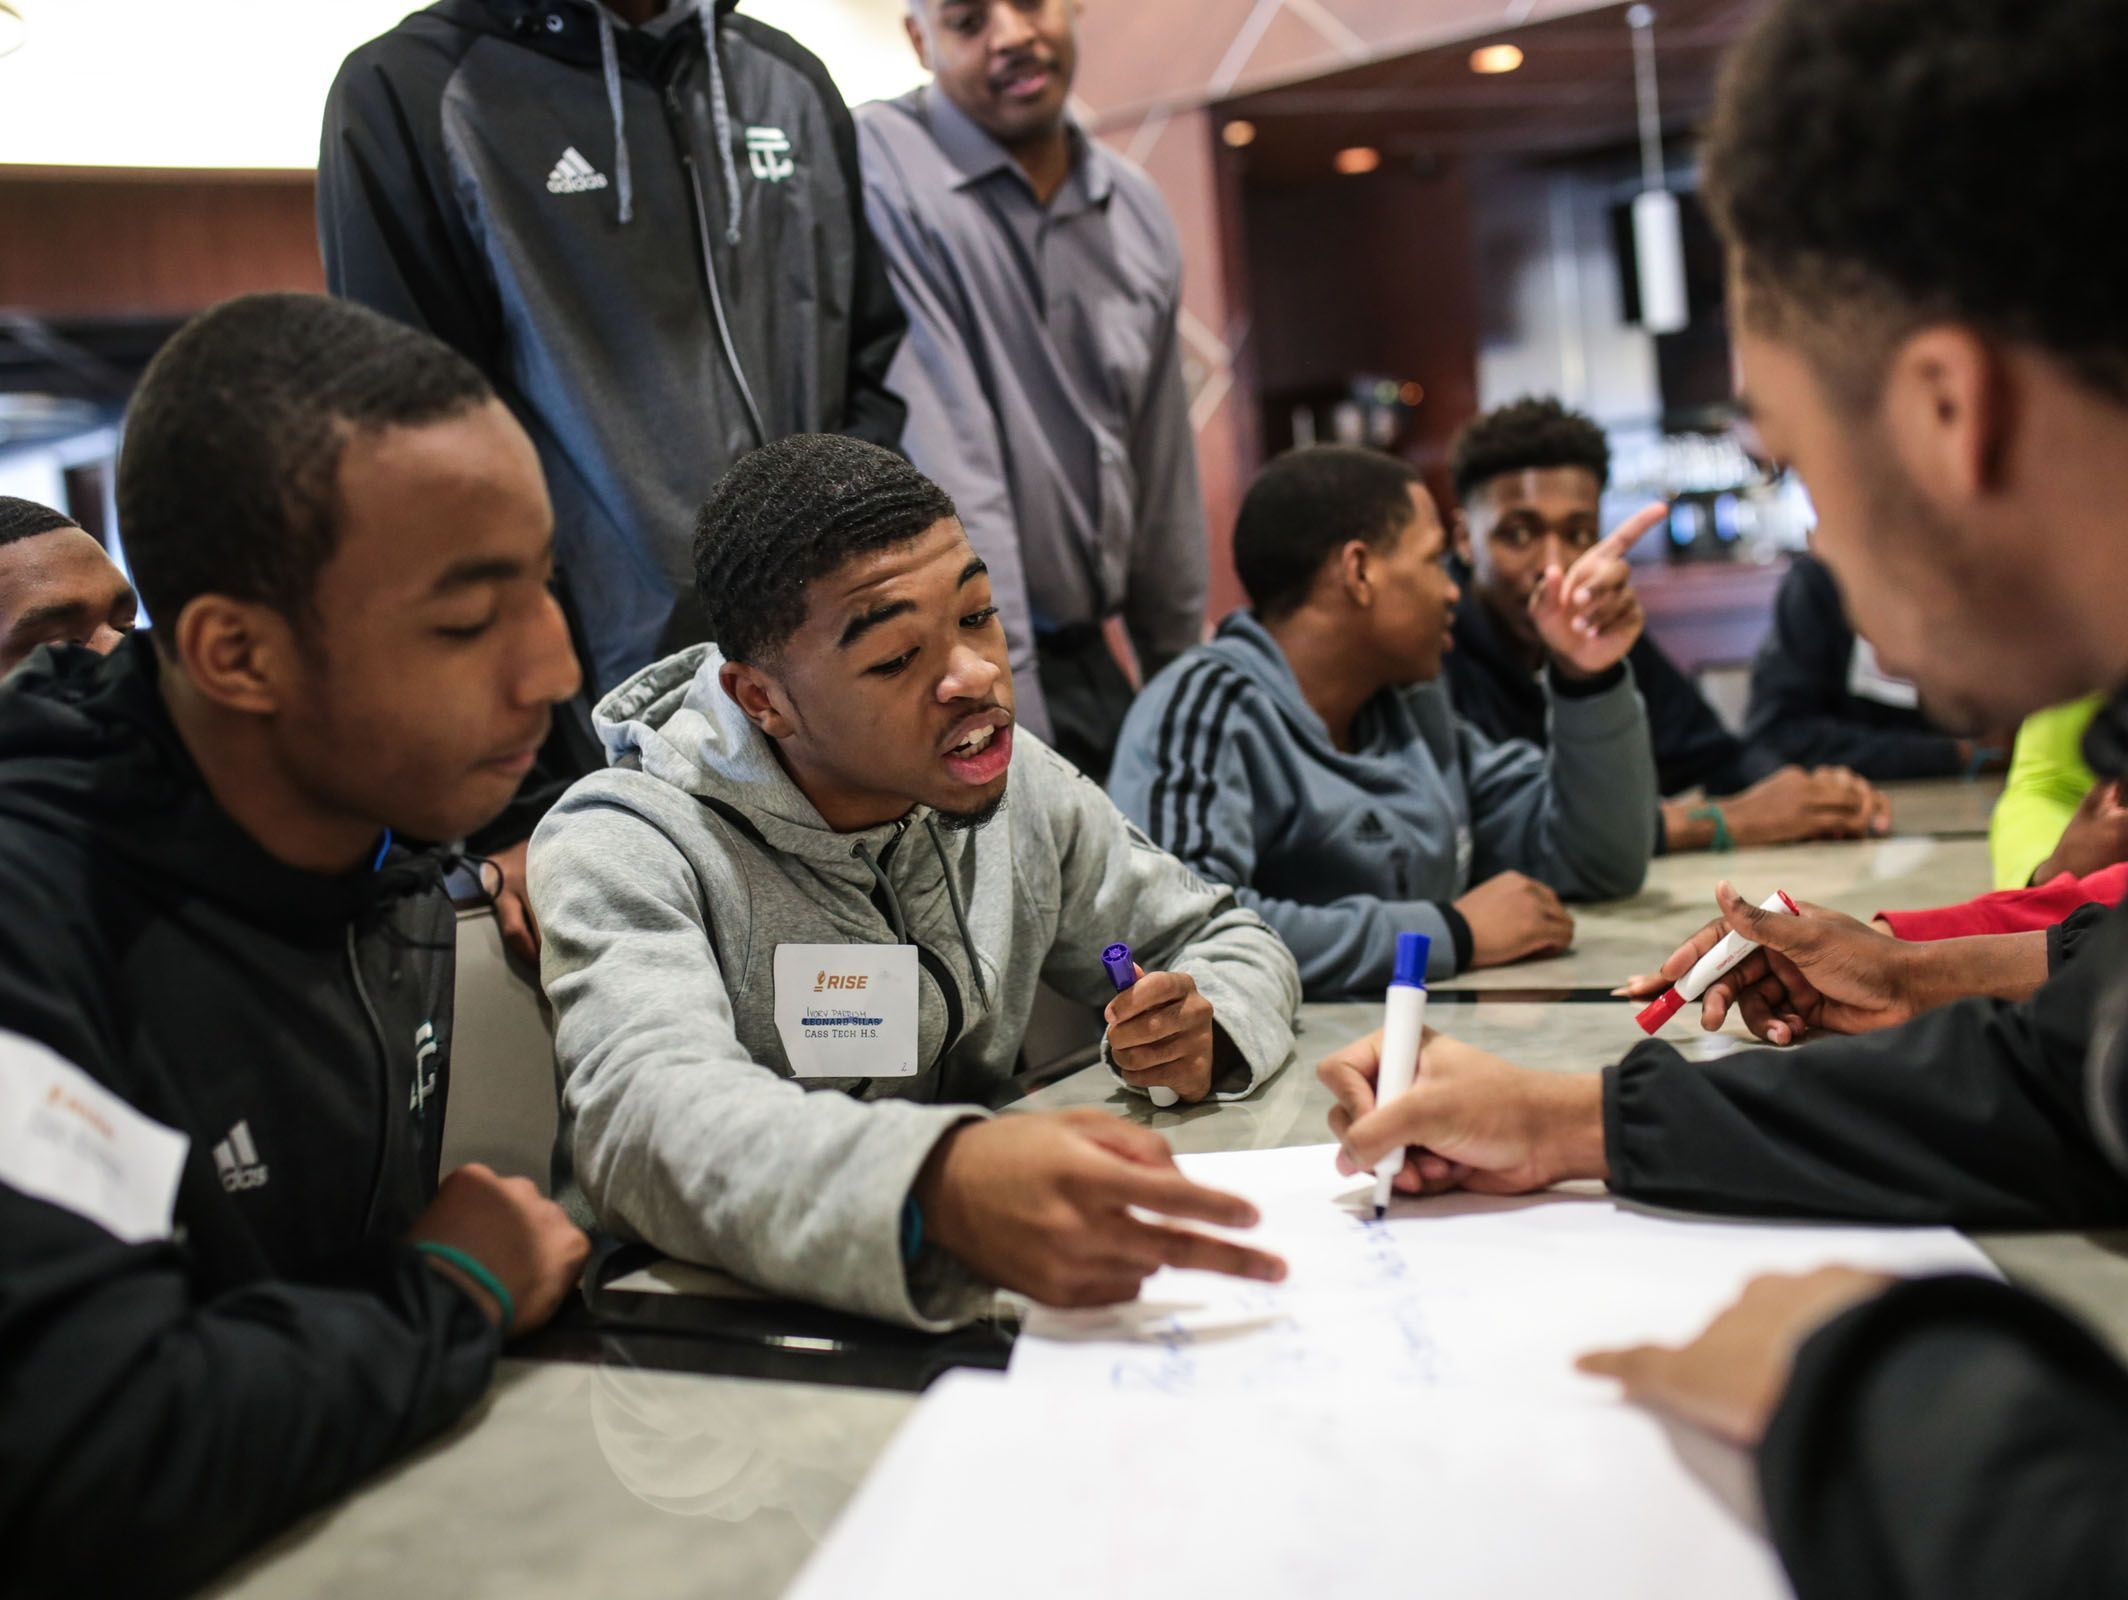 Case Tech High School student Ivory Parrish (center) gives his ideas during the RISE (Ross Initiative in Sports for Equality) event at The Palace of Auburn Hills on Wednesday March 29, 2017.